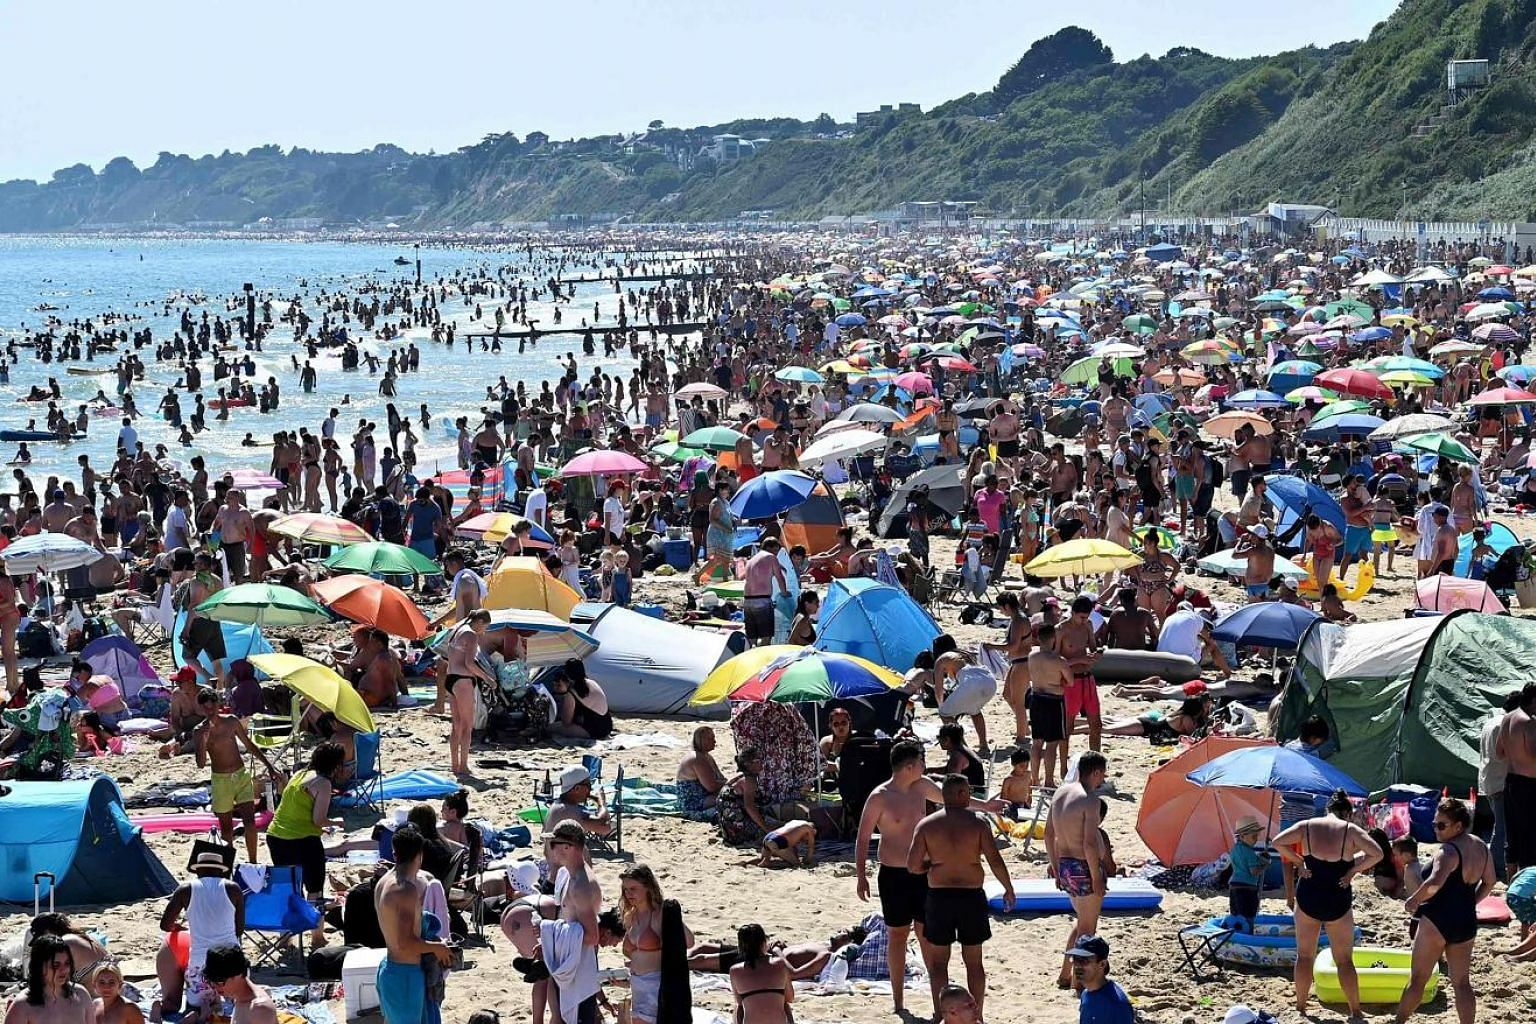 Bournemouth beach in England (above) was packed on Thursday as people celebrated the end of lockdown. Other beaches, including Southend in Essex (below), also drew large crowds - and official warning over the risks of Covid-19 infections.